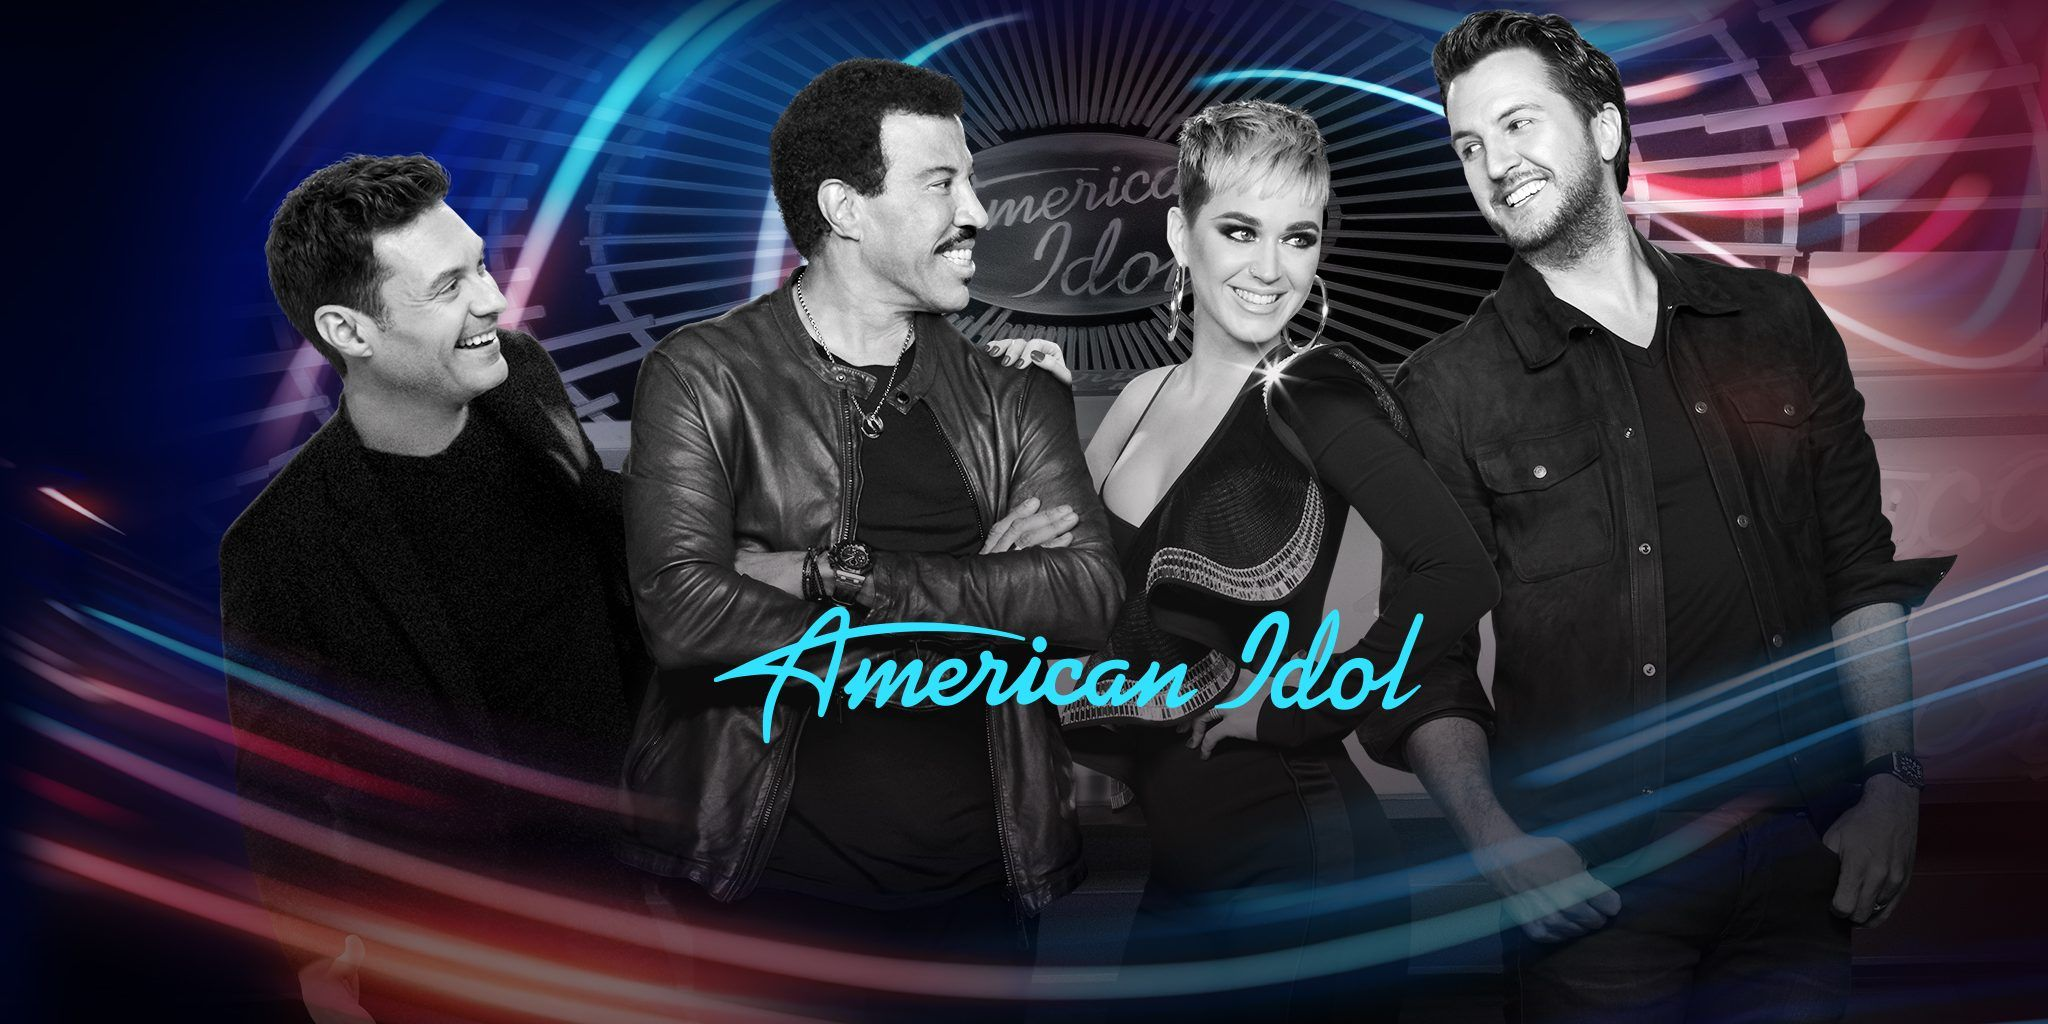 Who Are the American Idol 2019 Judges?